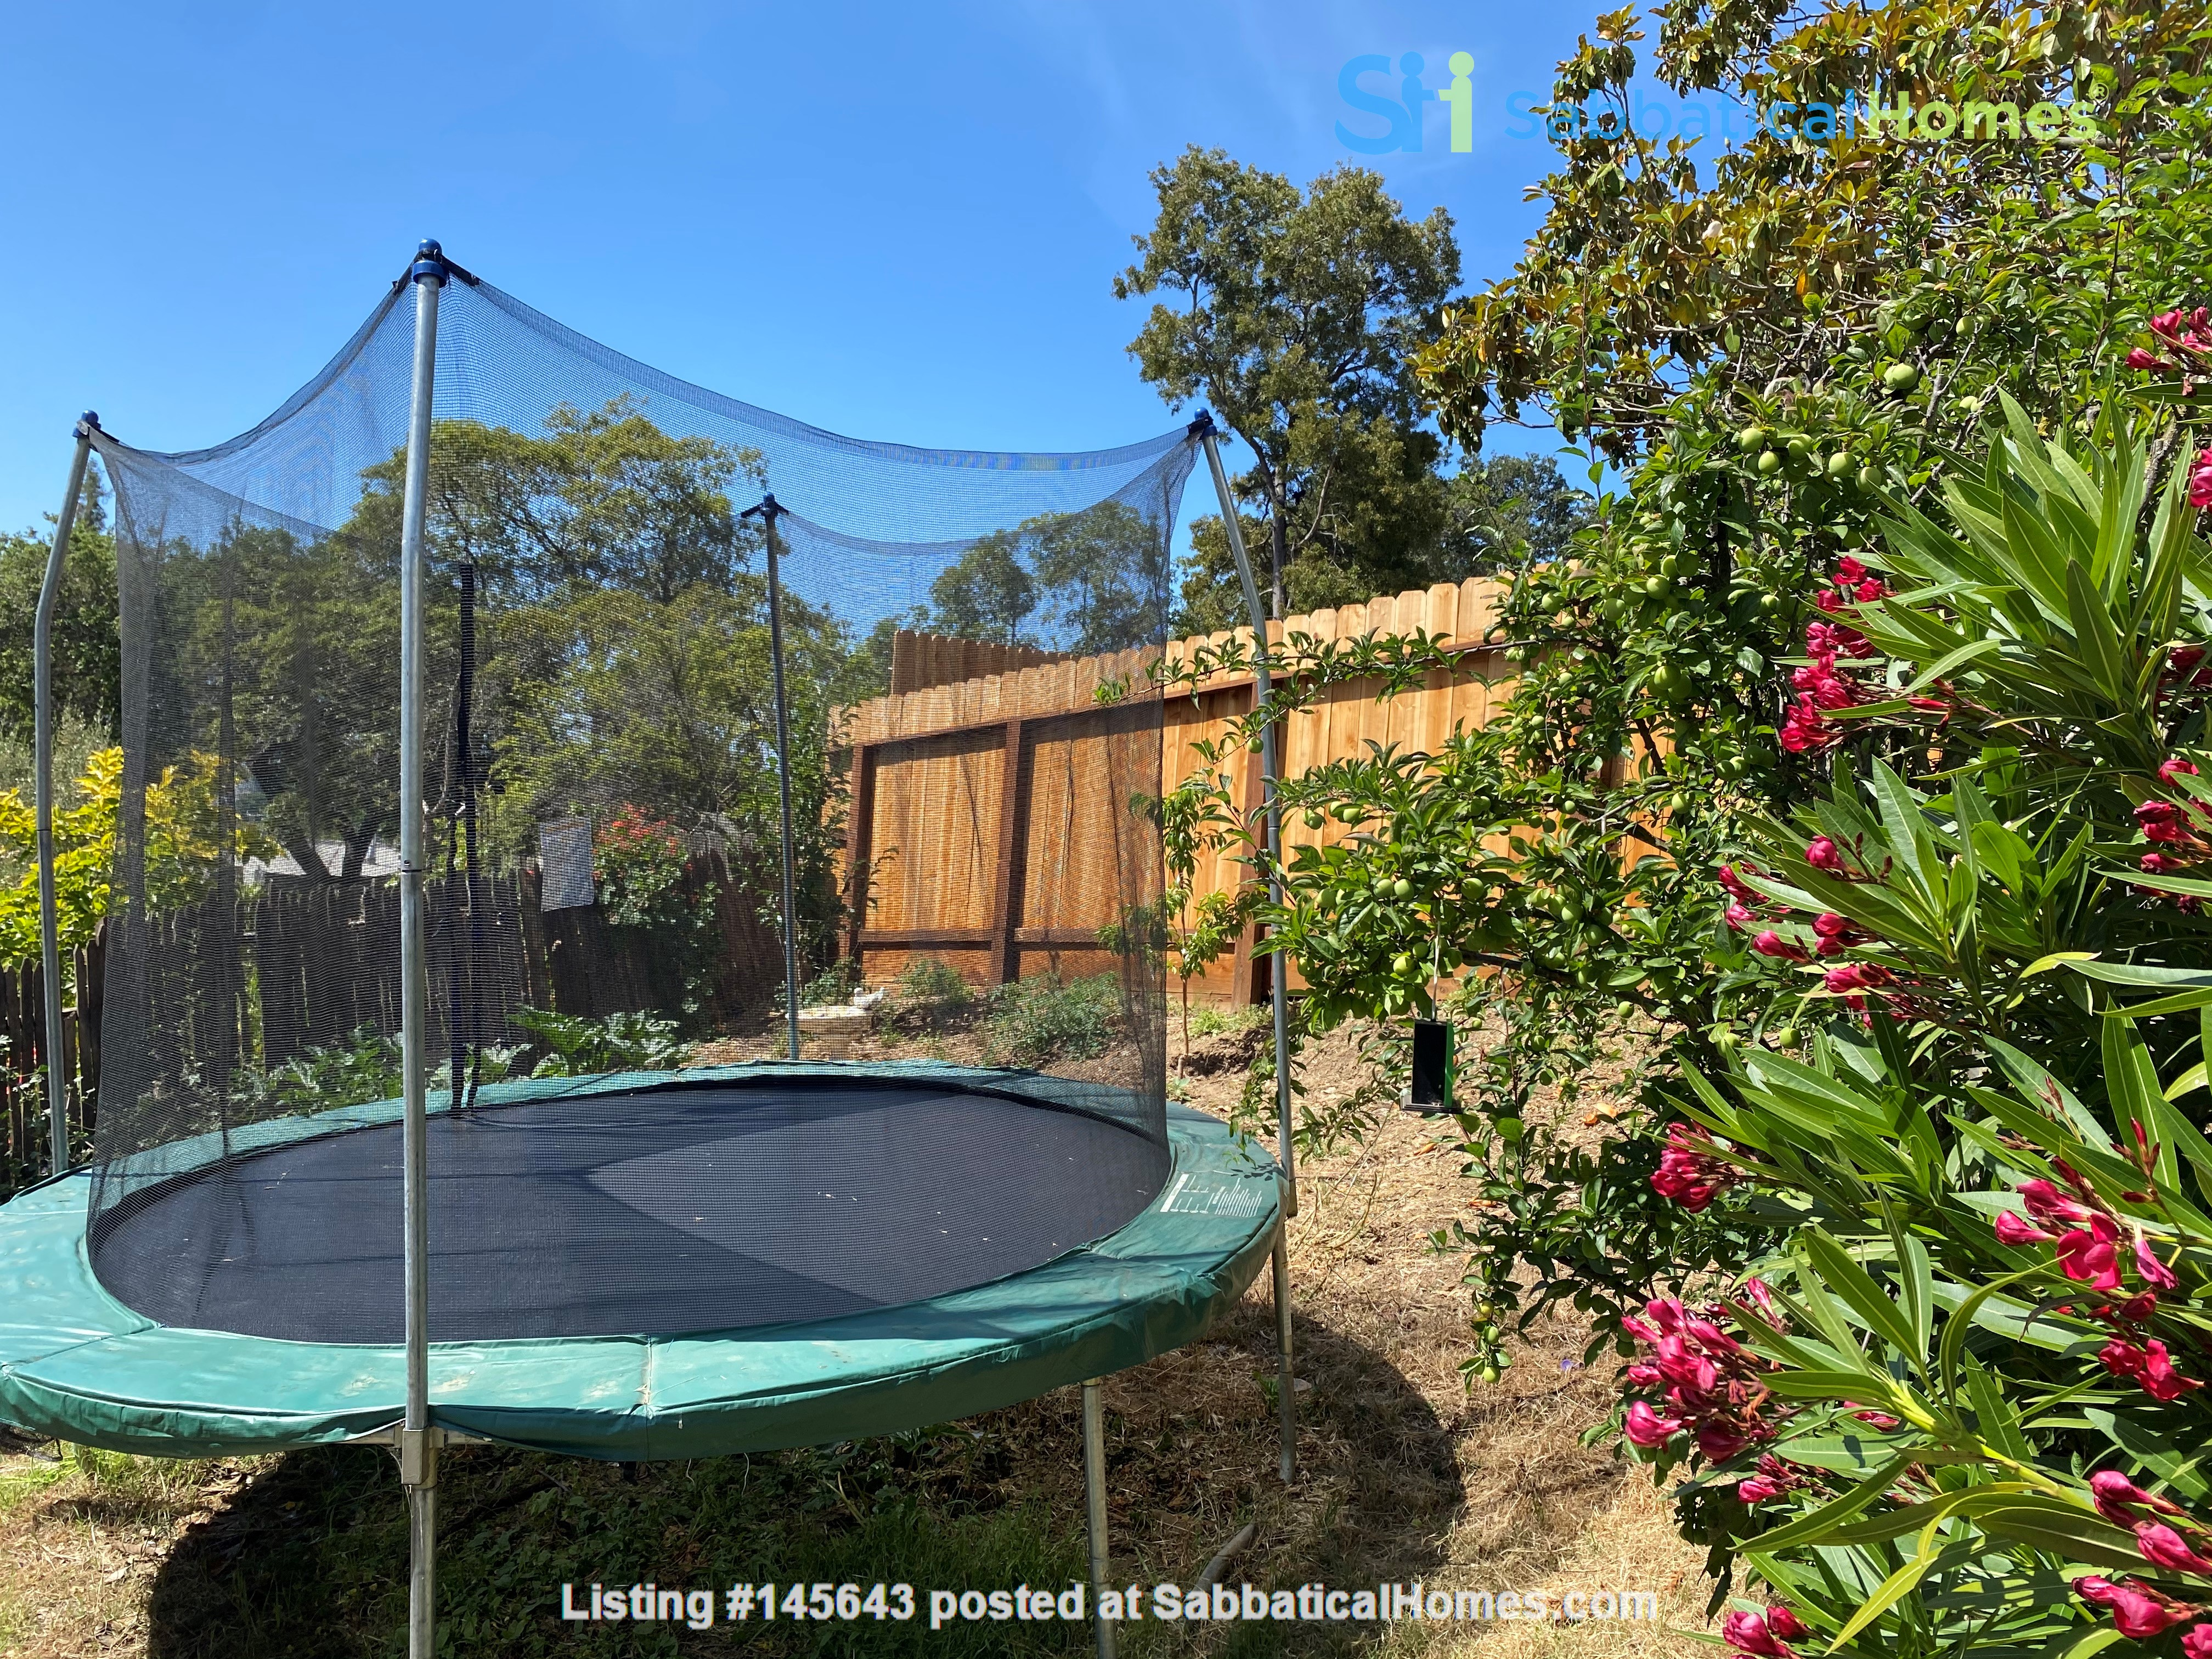 Charming 2-bedroom family-friendly home with big garden Home Rental in Oakland, California, United States 1